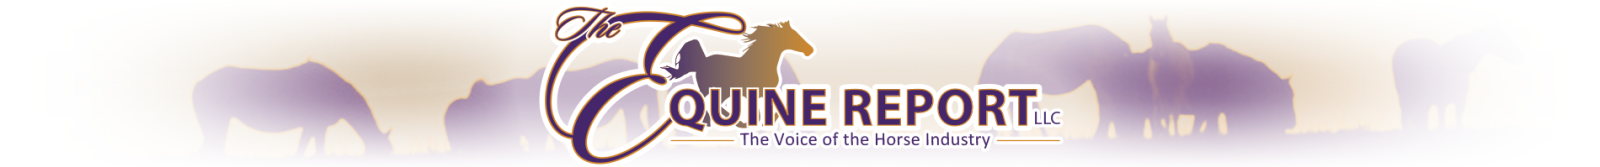 The Equine Report